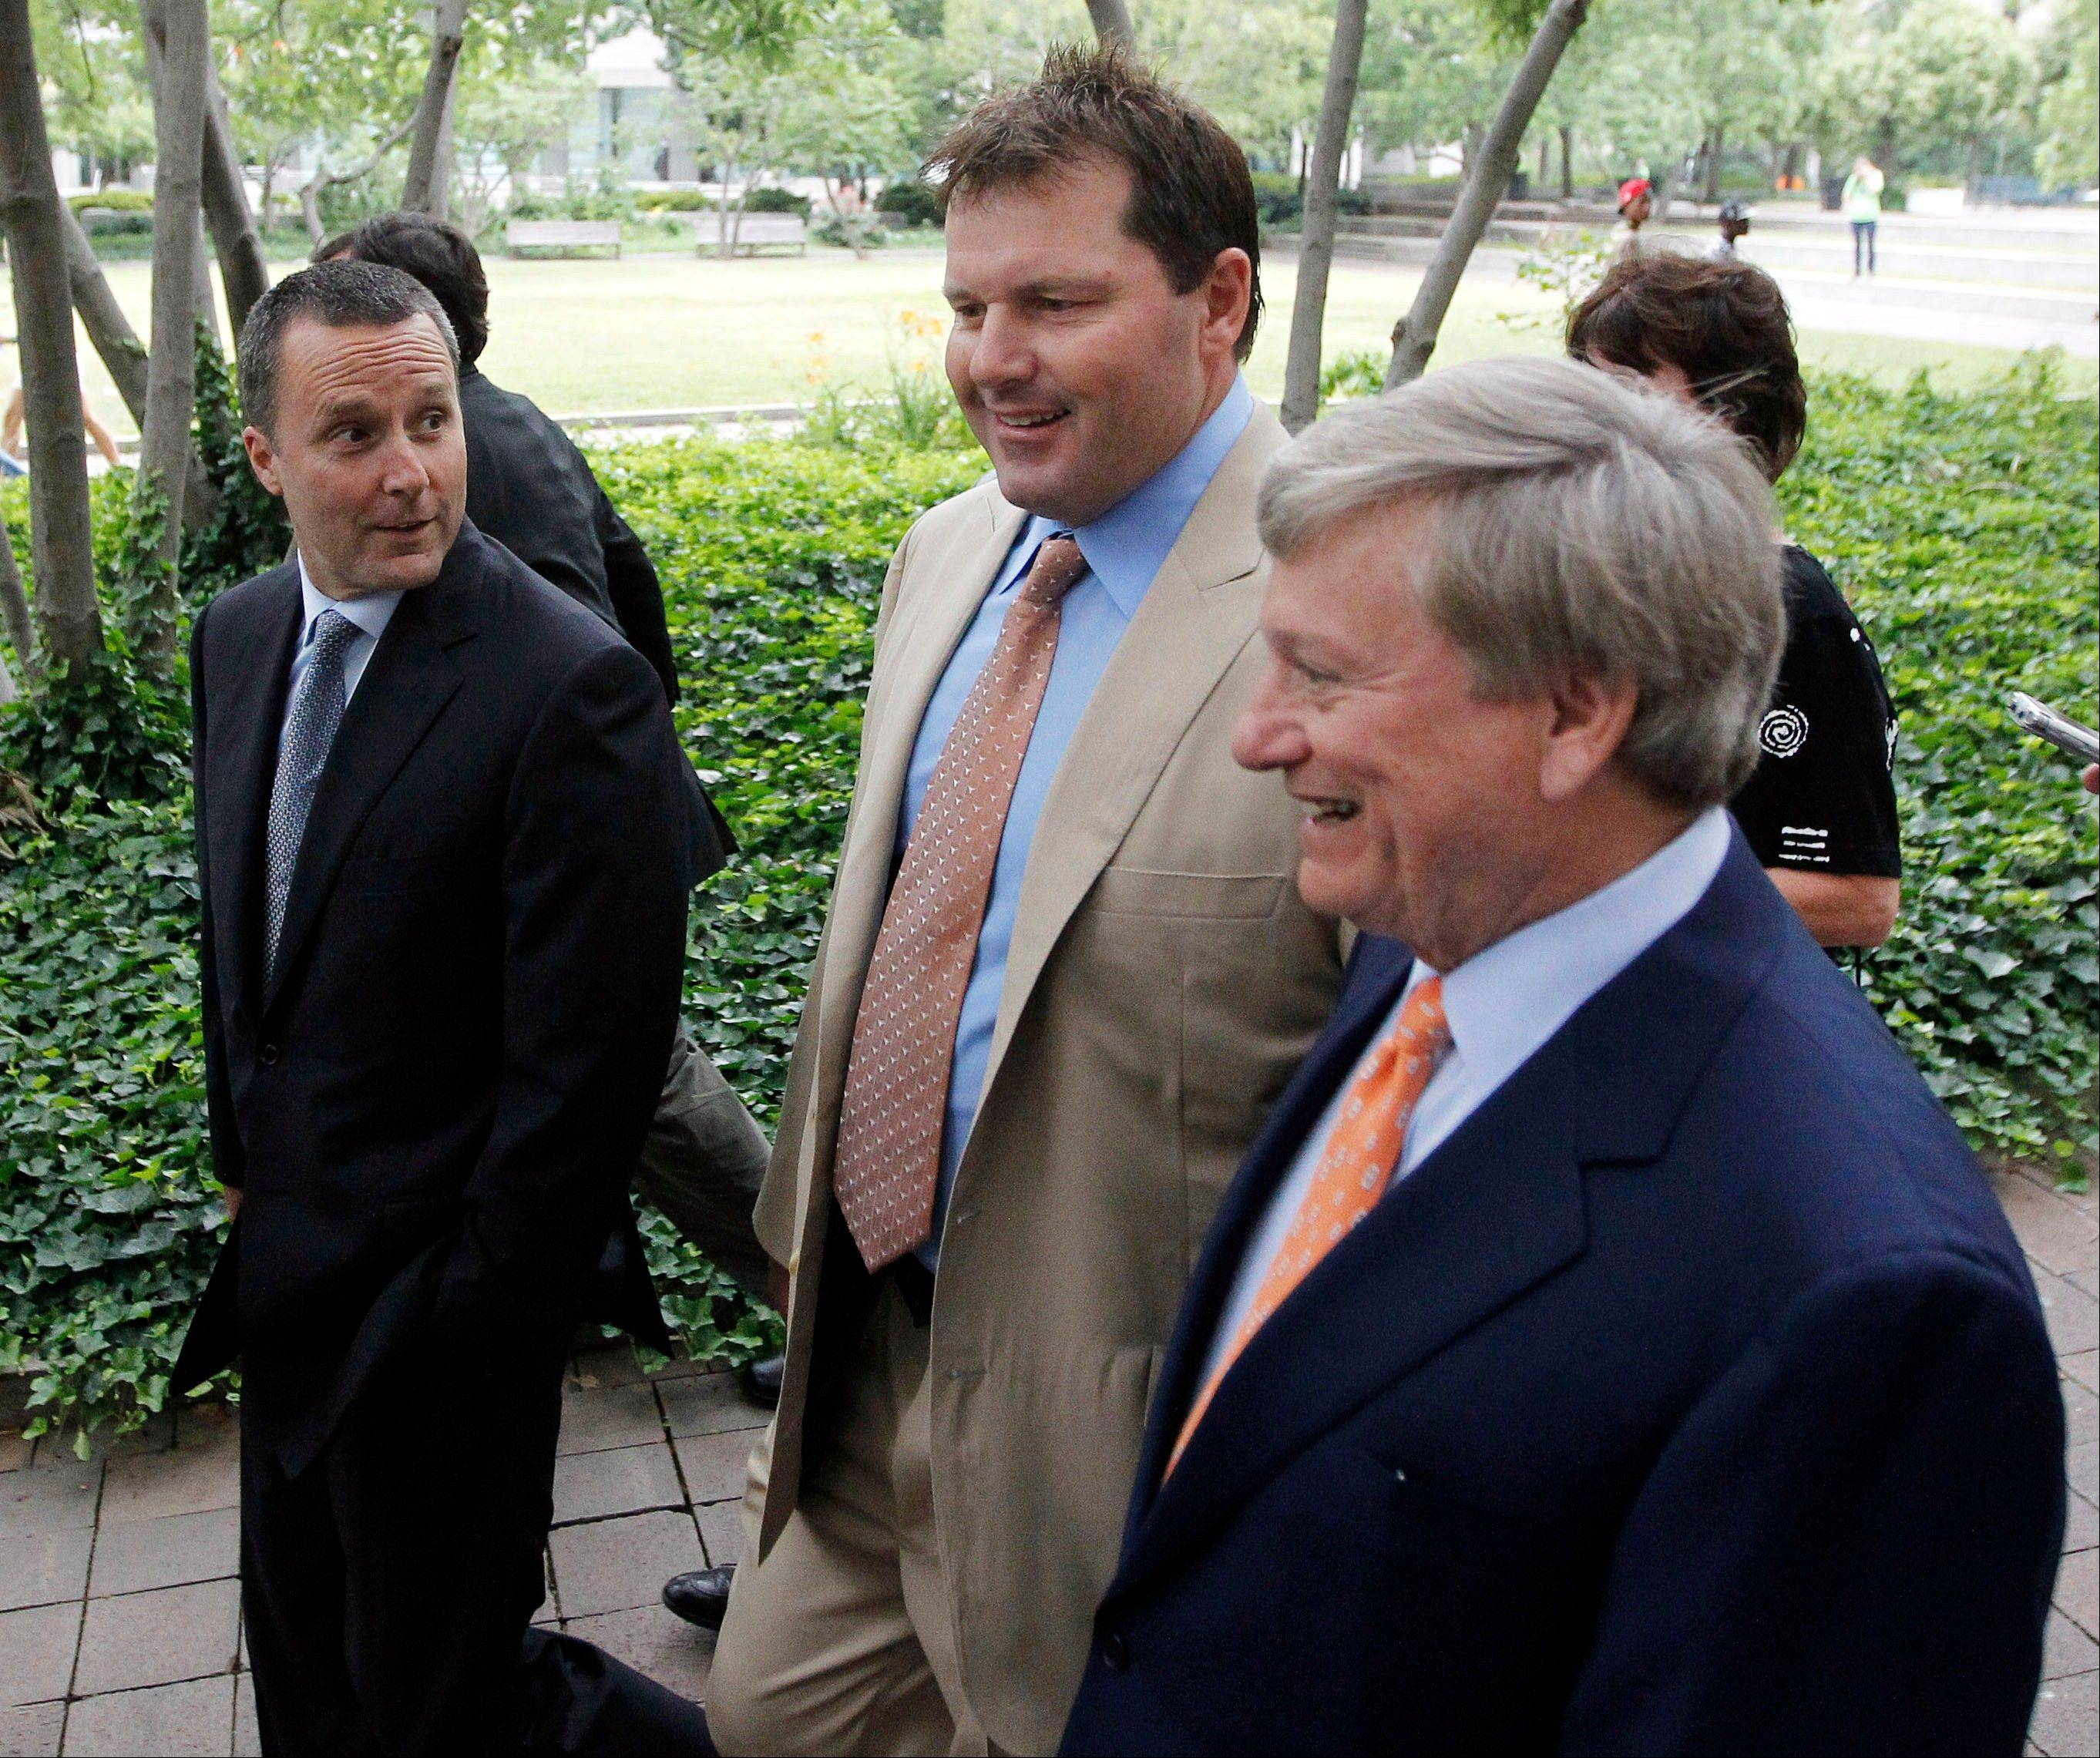 Former Major League Baseball pitcher Roger Clemens, center, and his attorney's, Rusty Hardin, right, and Michael Attanasio, left, arrive at federal court in Washington, Monday.